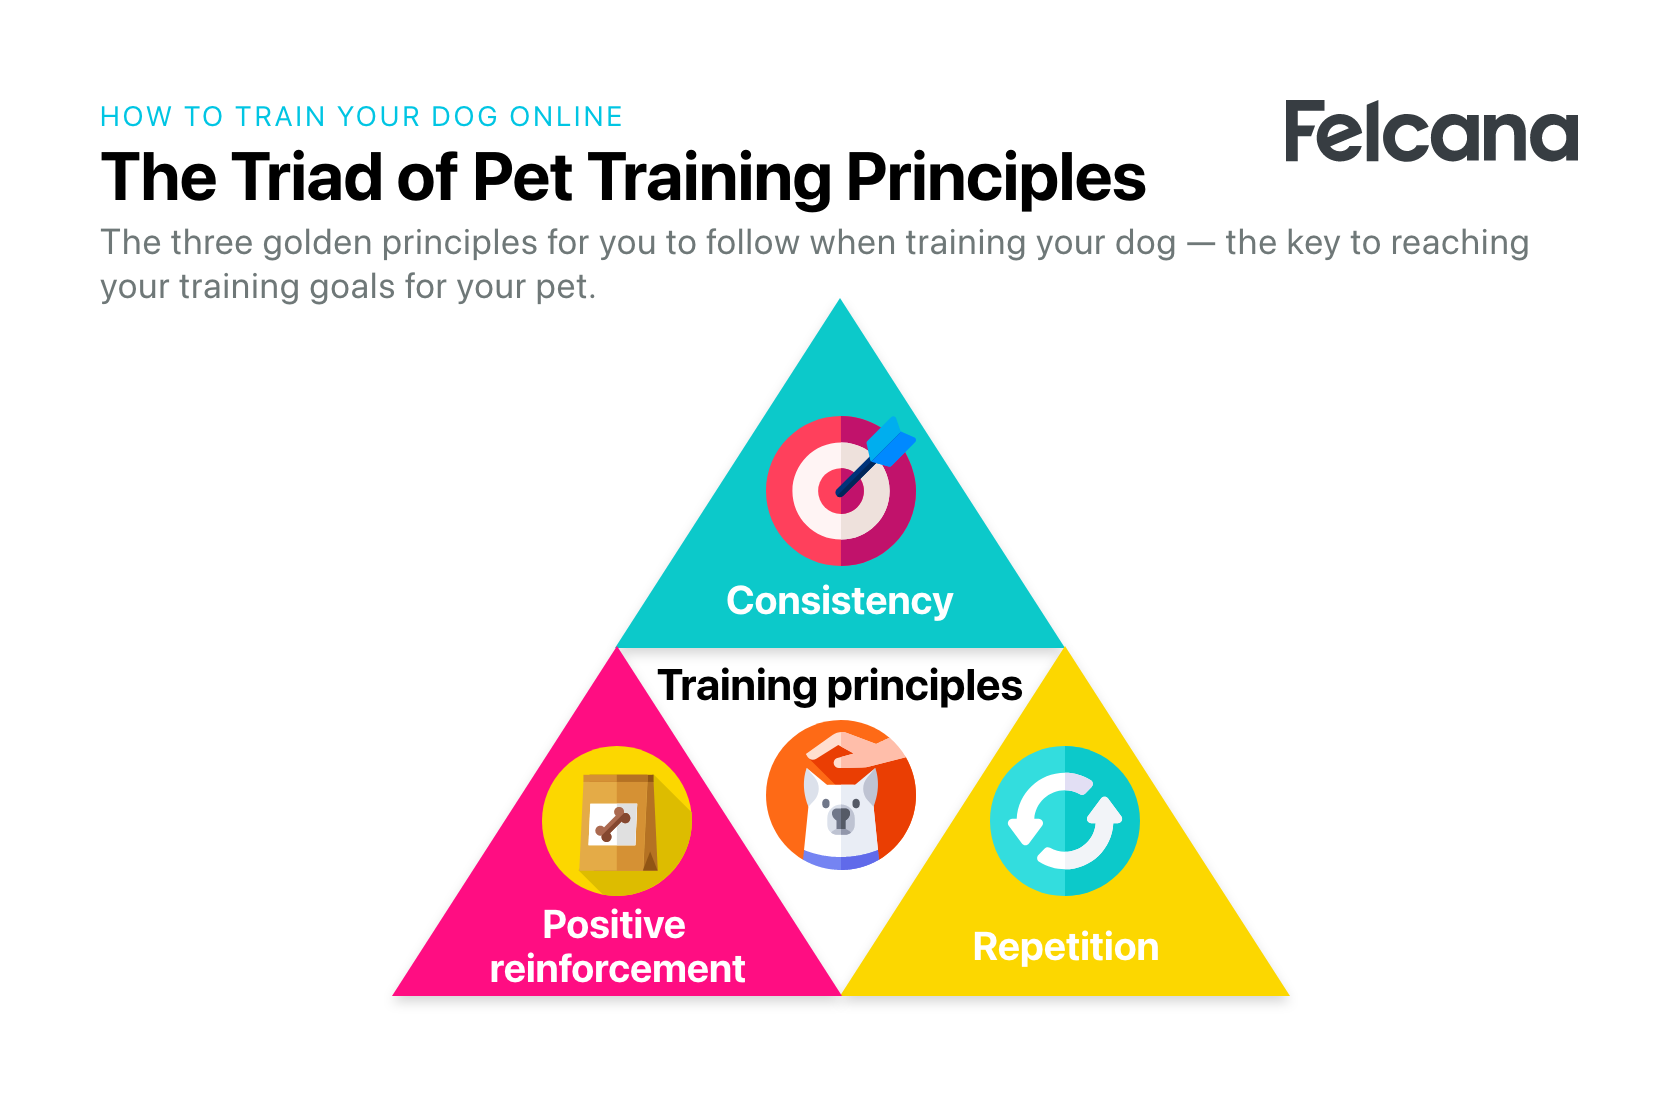 Pyramid of the three core principles for dog training